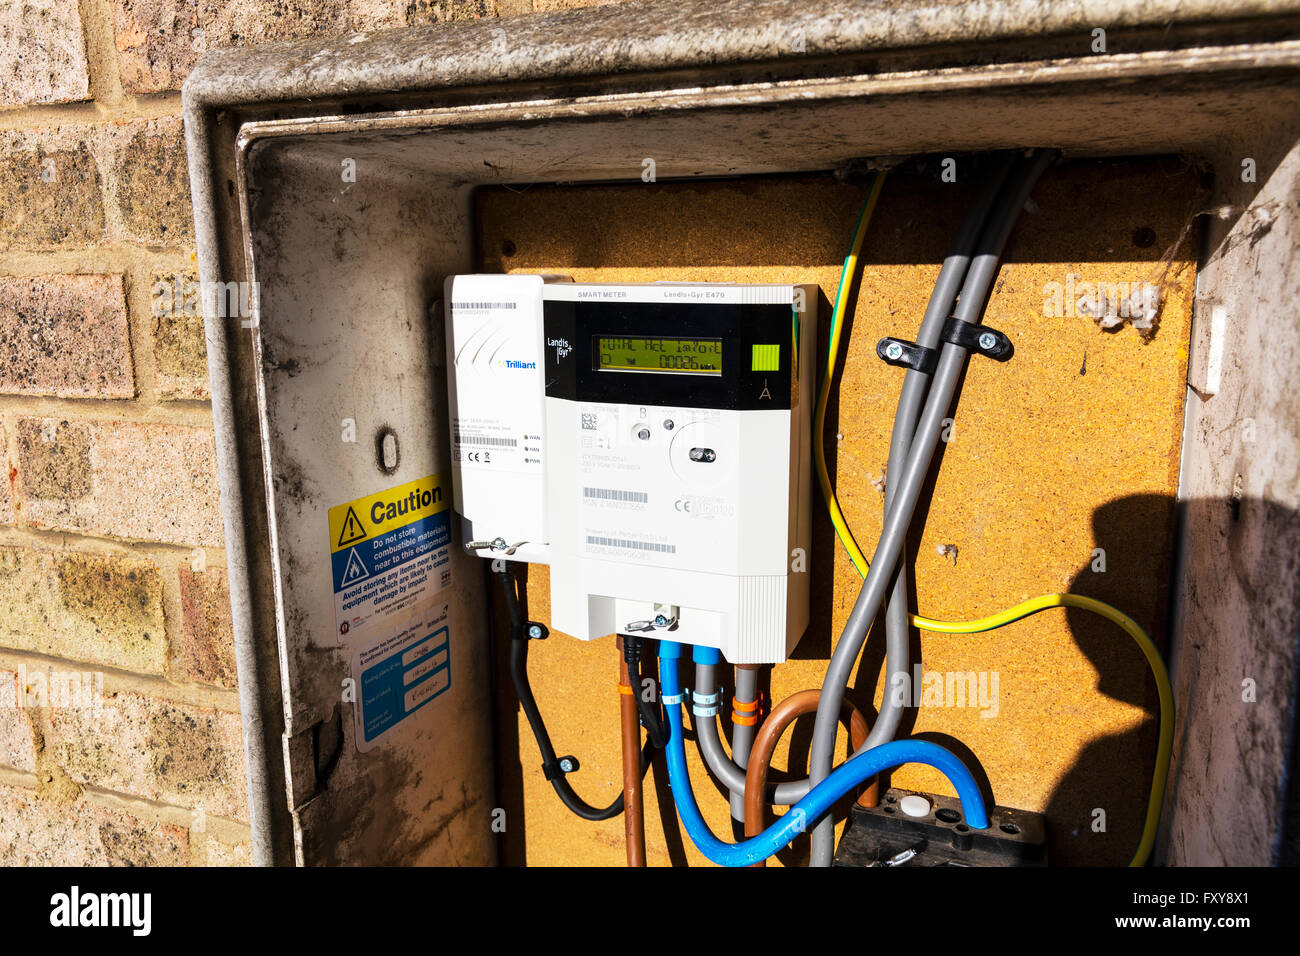 British gas electric electricity smart meter monitoring usage energy home technology UK meters metering real time - Stock Image